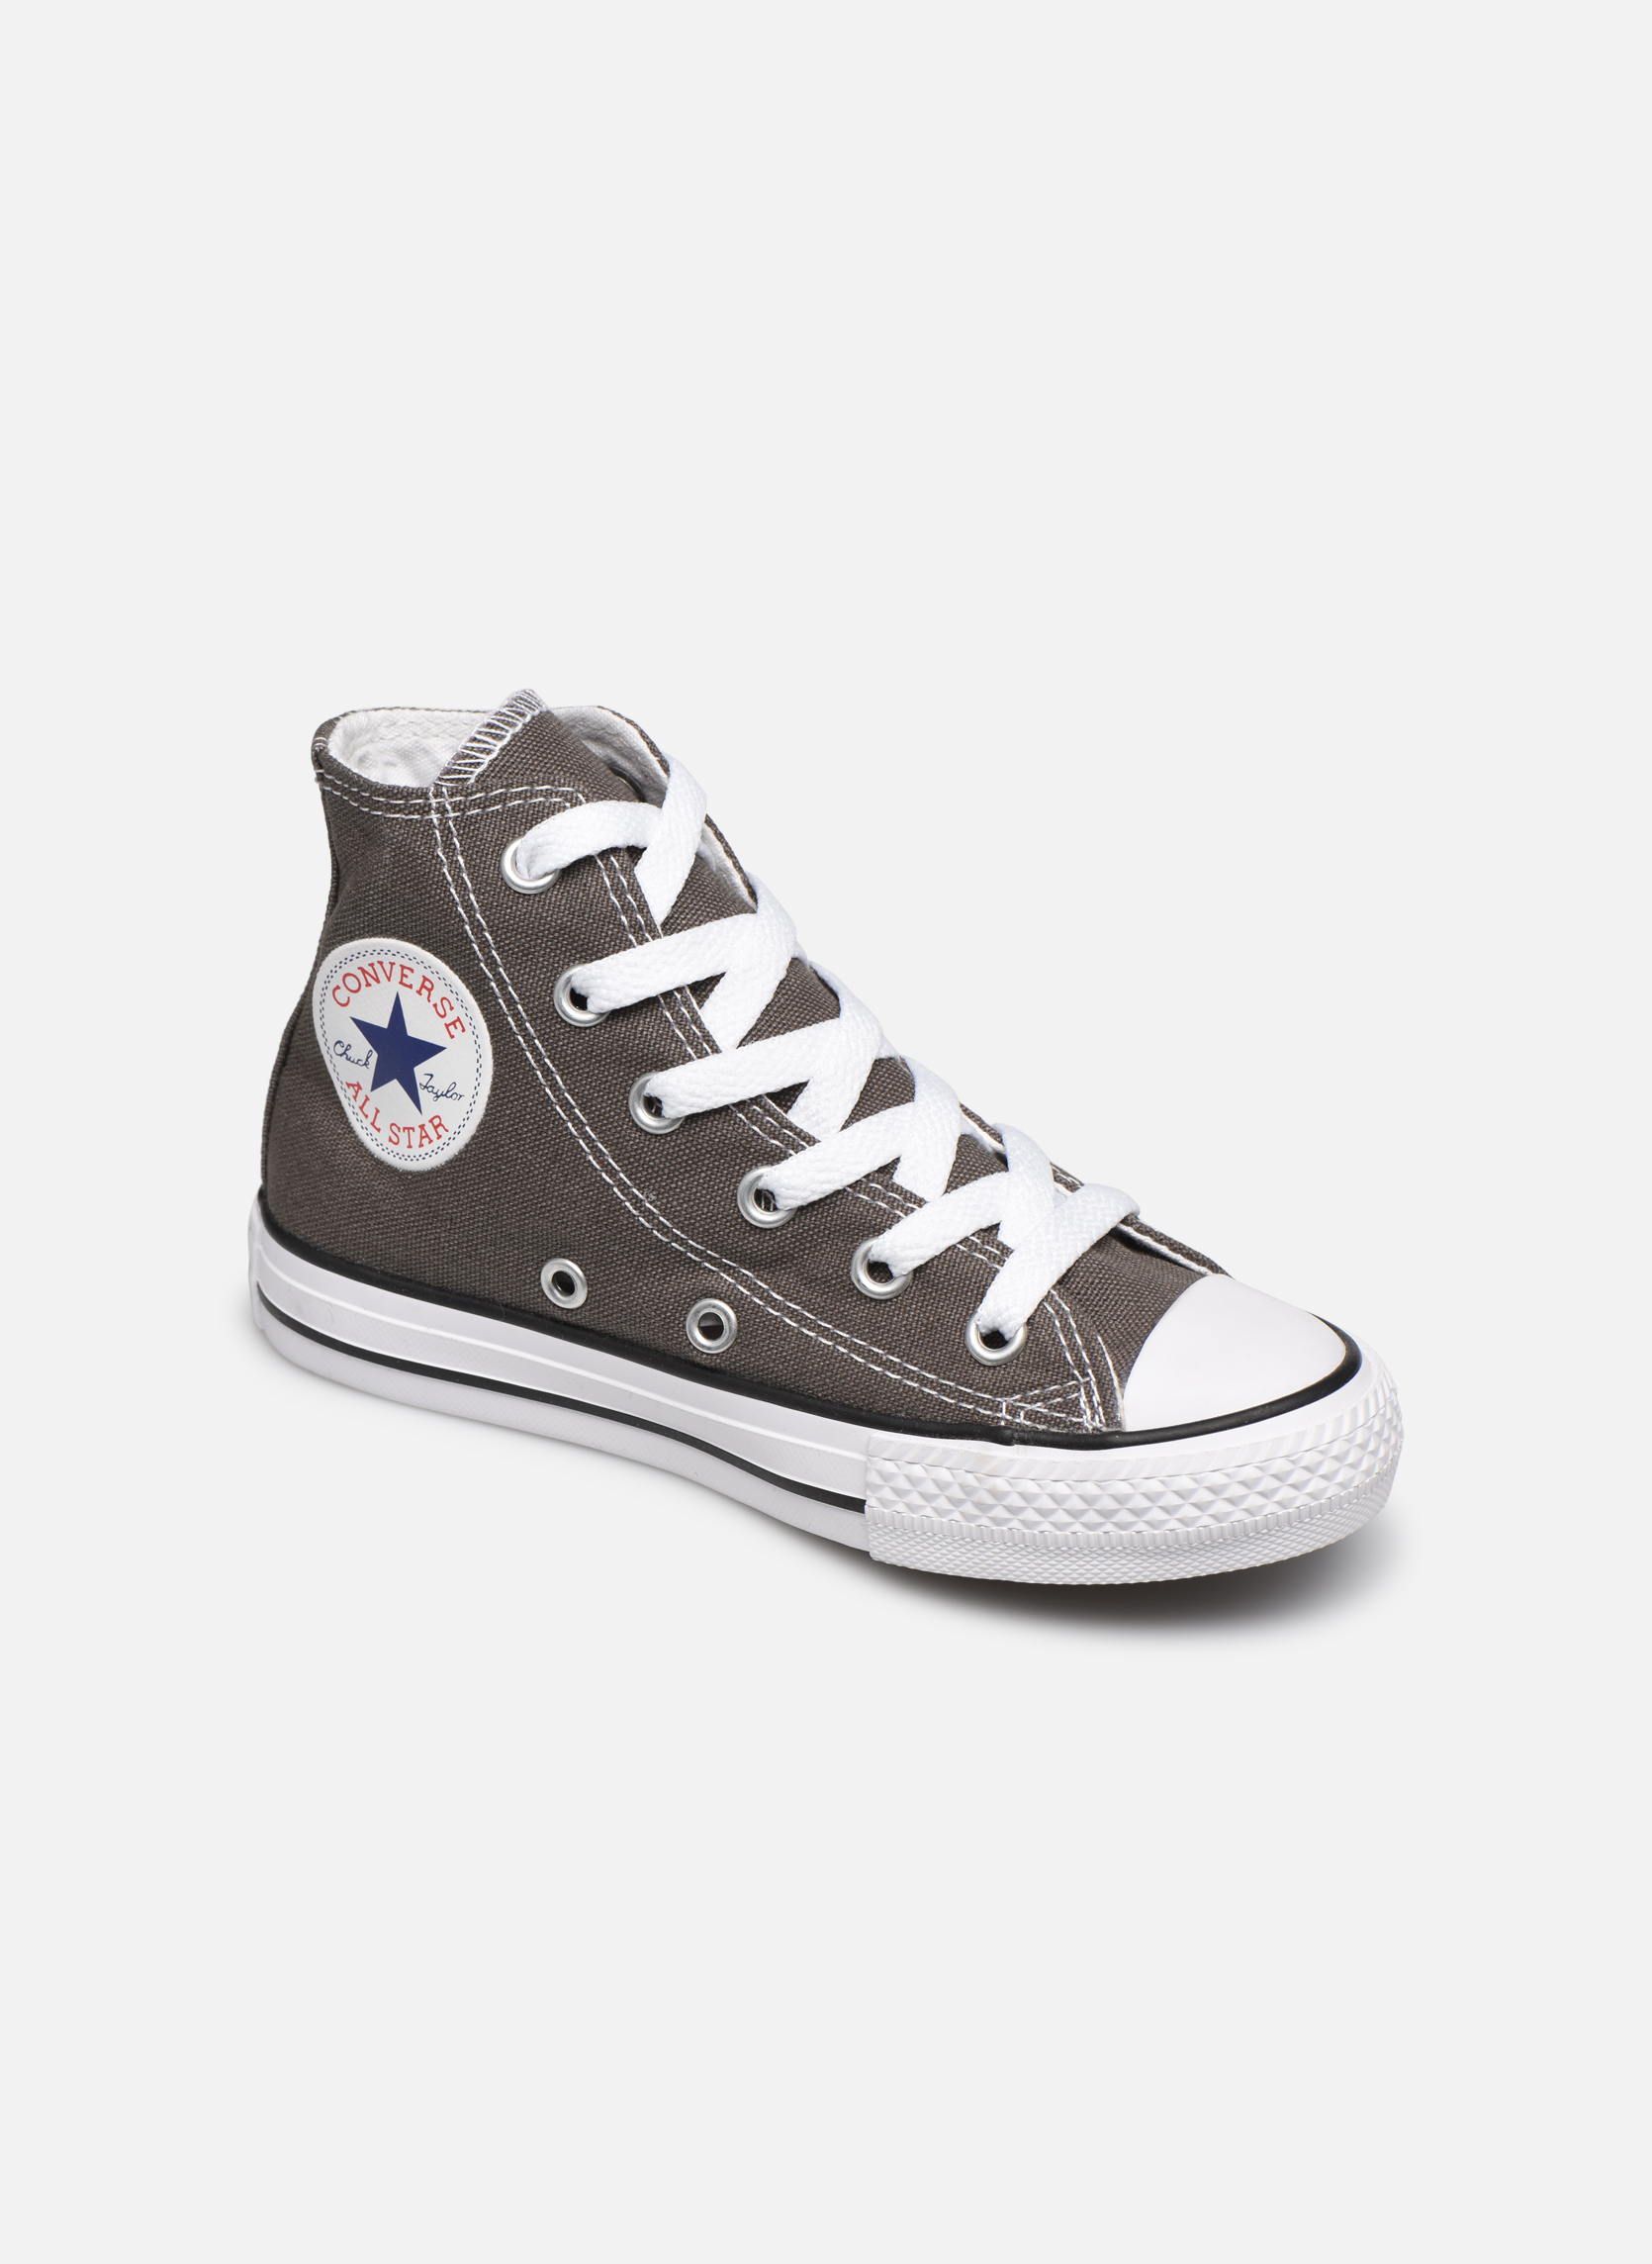 Sneakers Bambino Chuck Taylor All Star Sp Hi